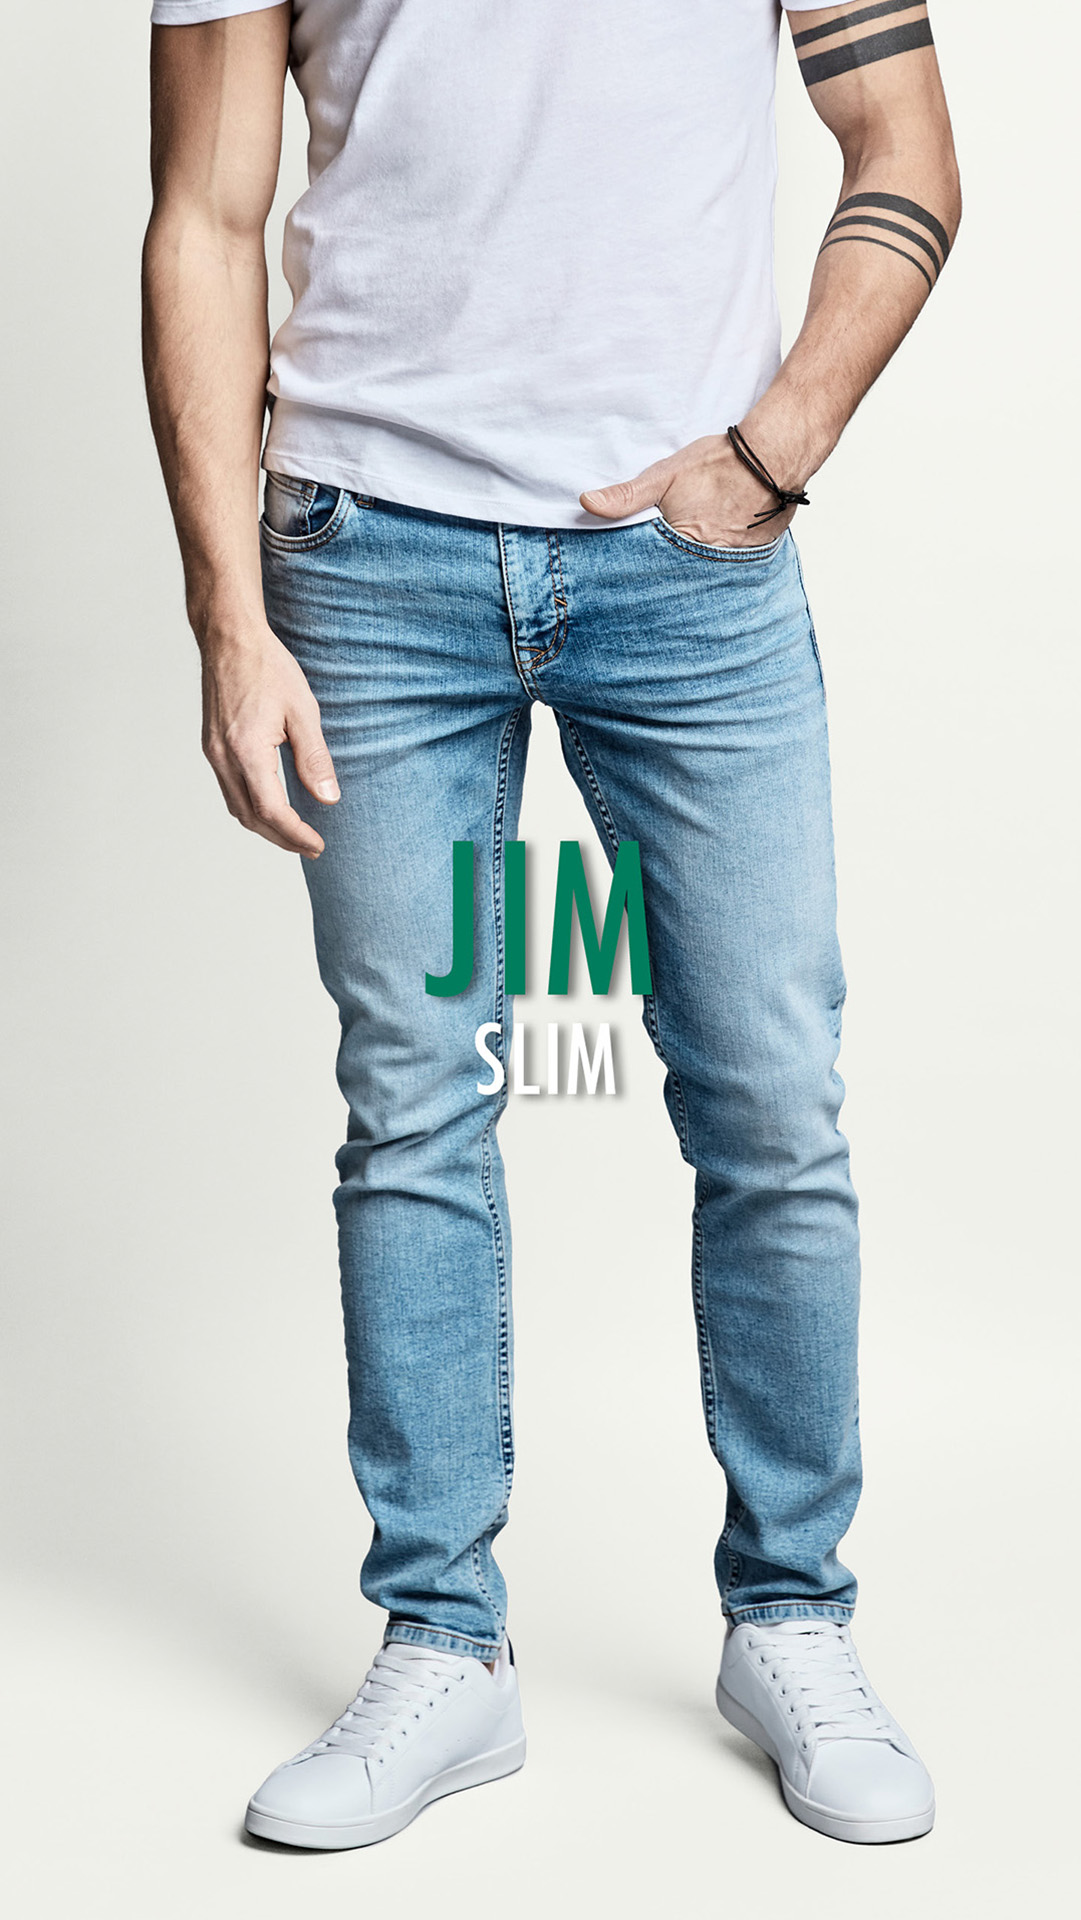 New Yorker Denim Fit Guide